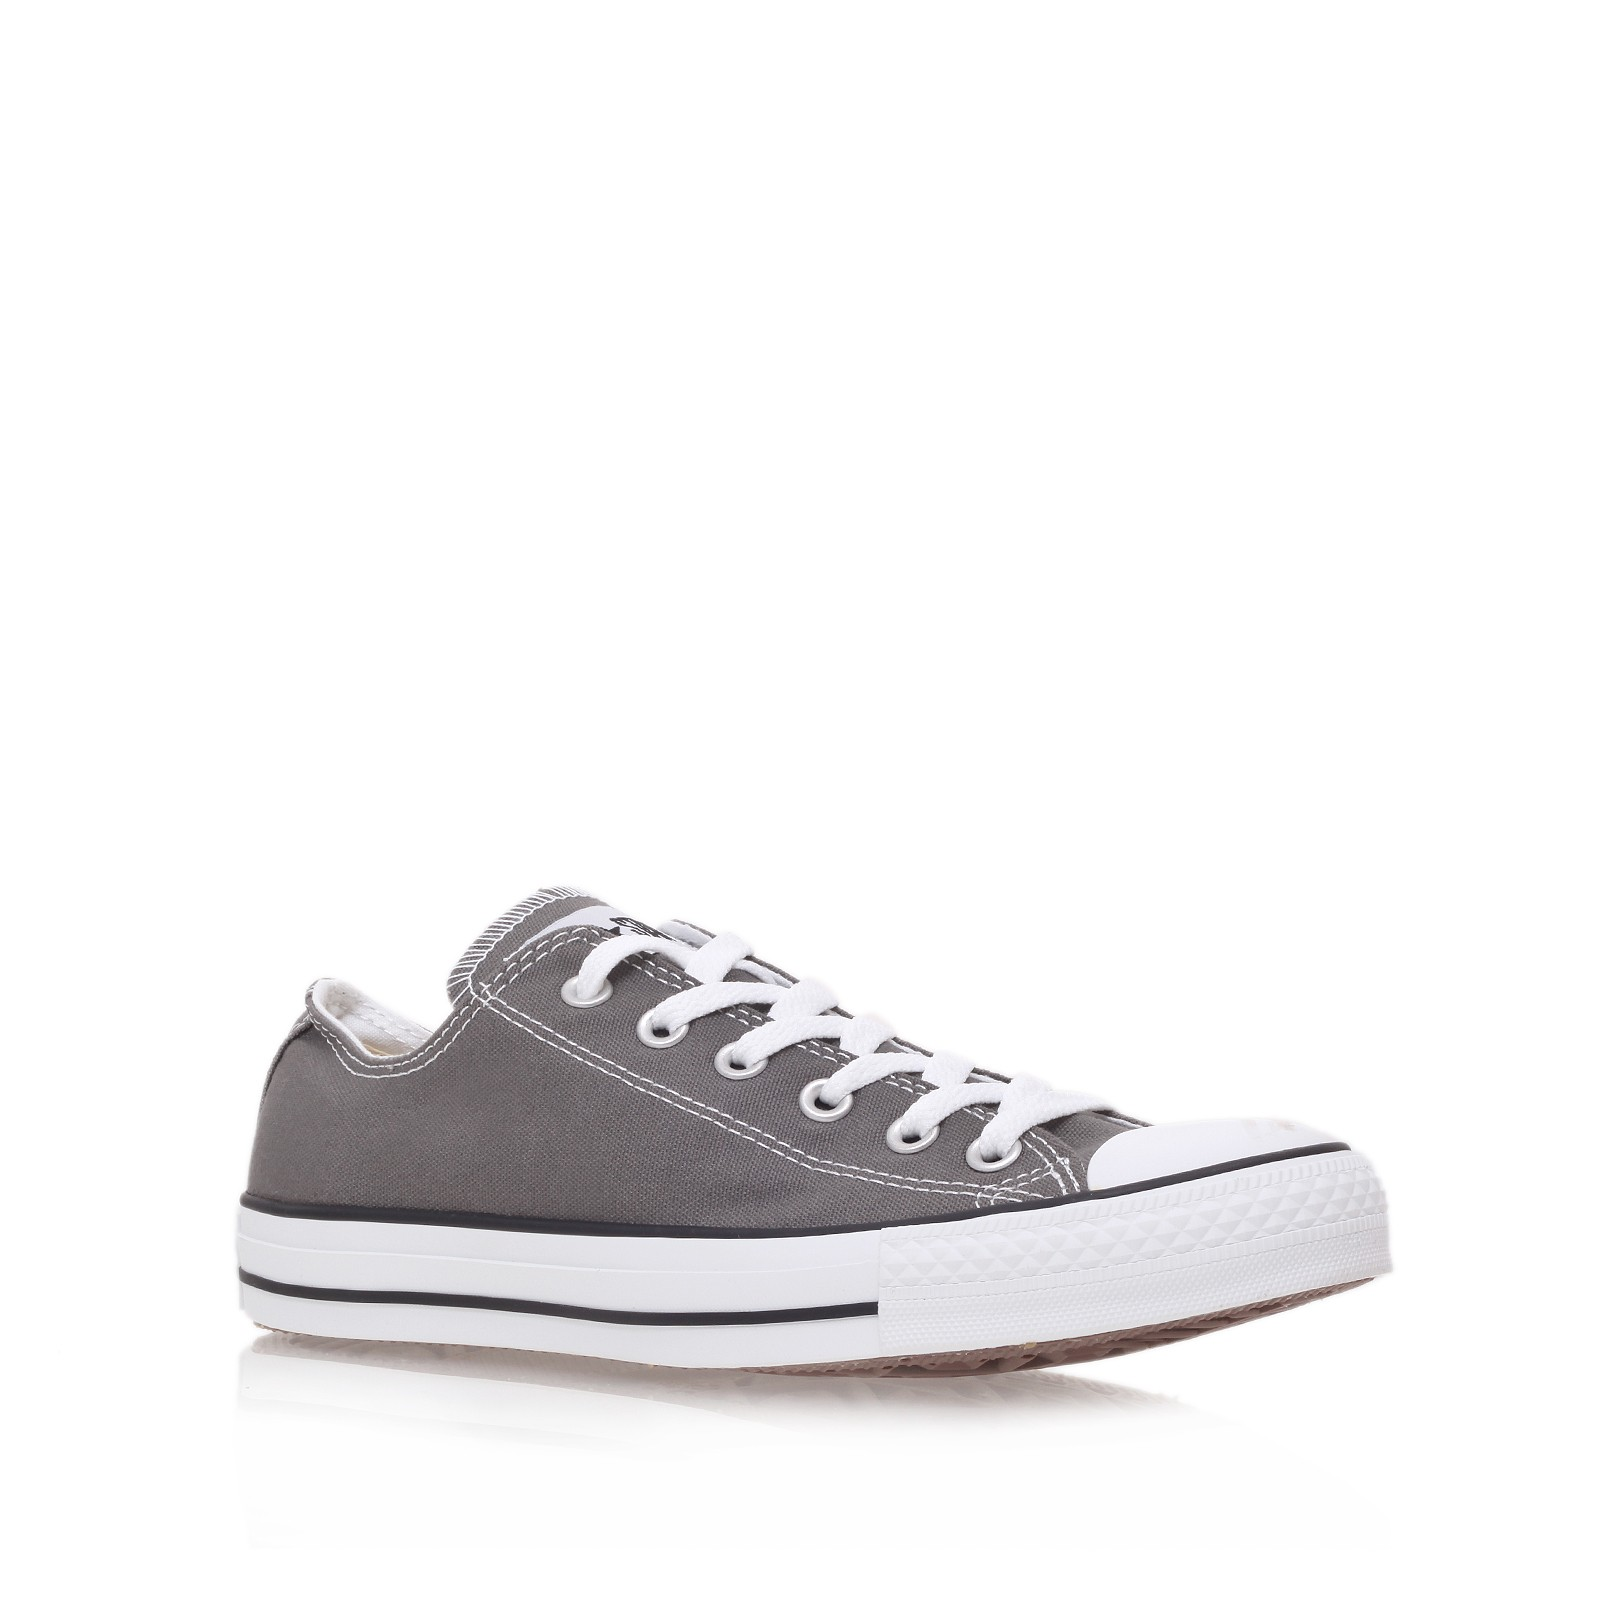 Converse all star low in gray for men grey lyst - Graue converse ...